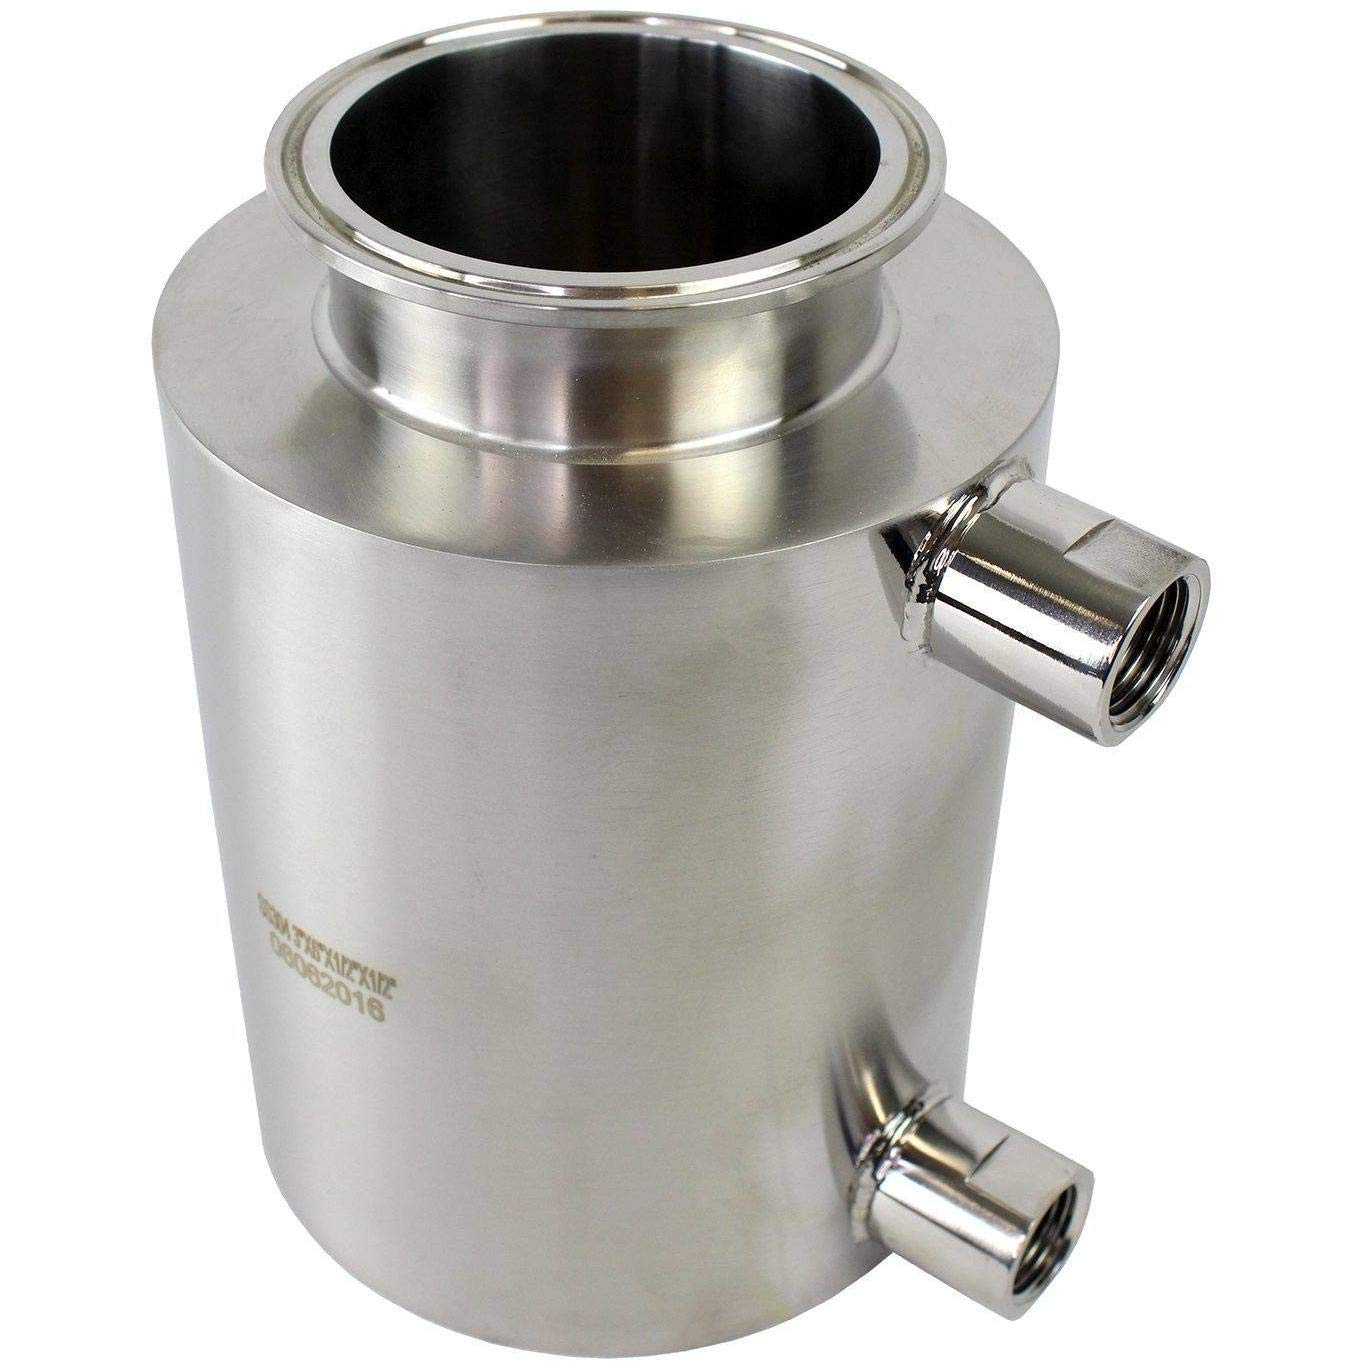 BVV 6 Inch Tri-Clamp x 4 Inch Deep Fully Jacketed Containers